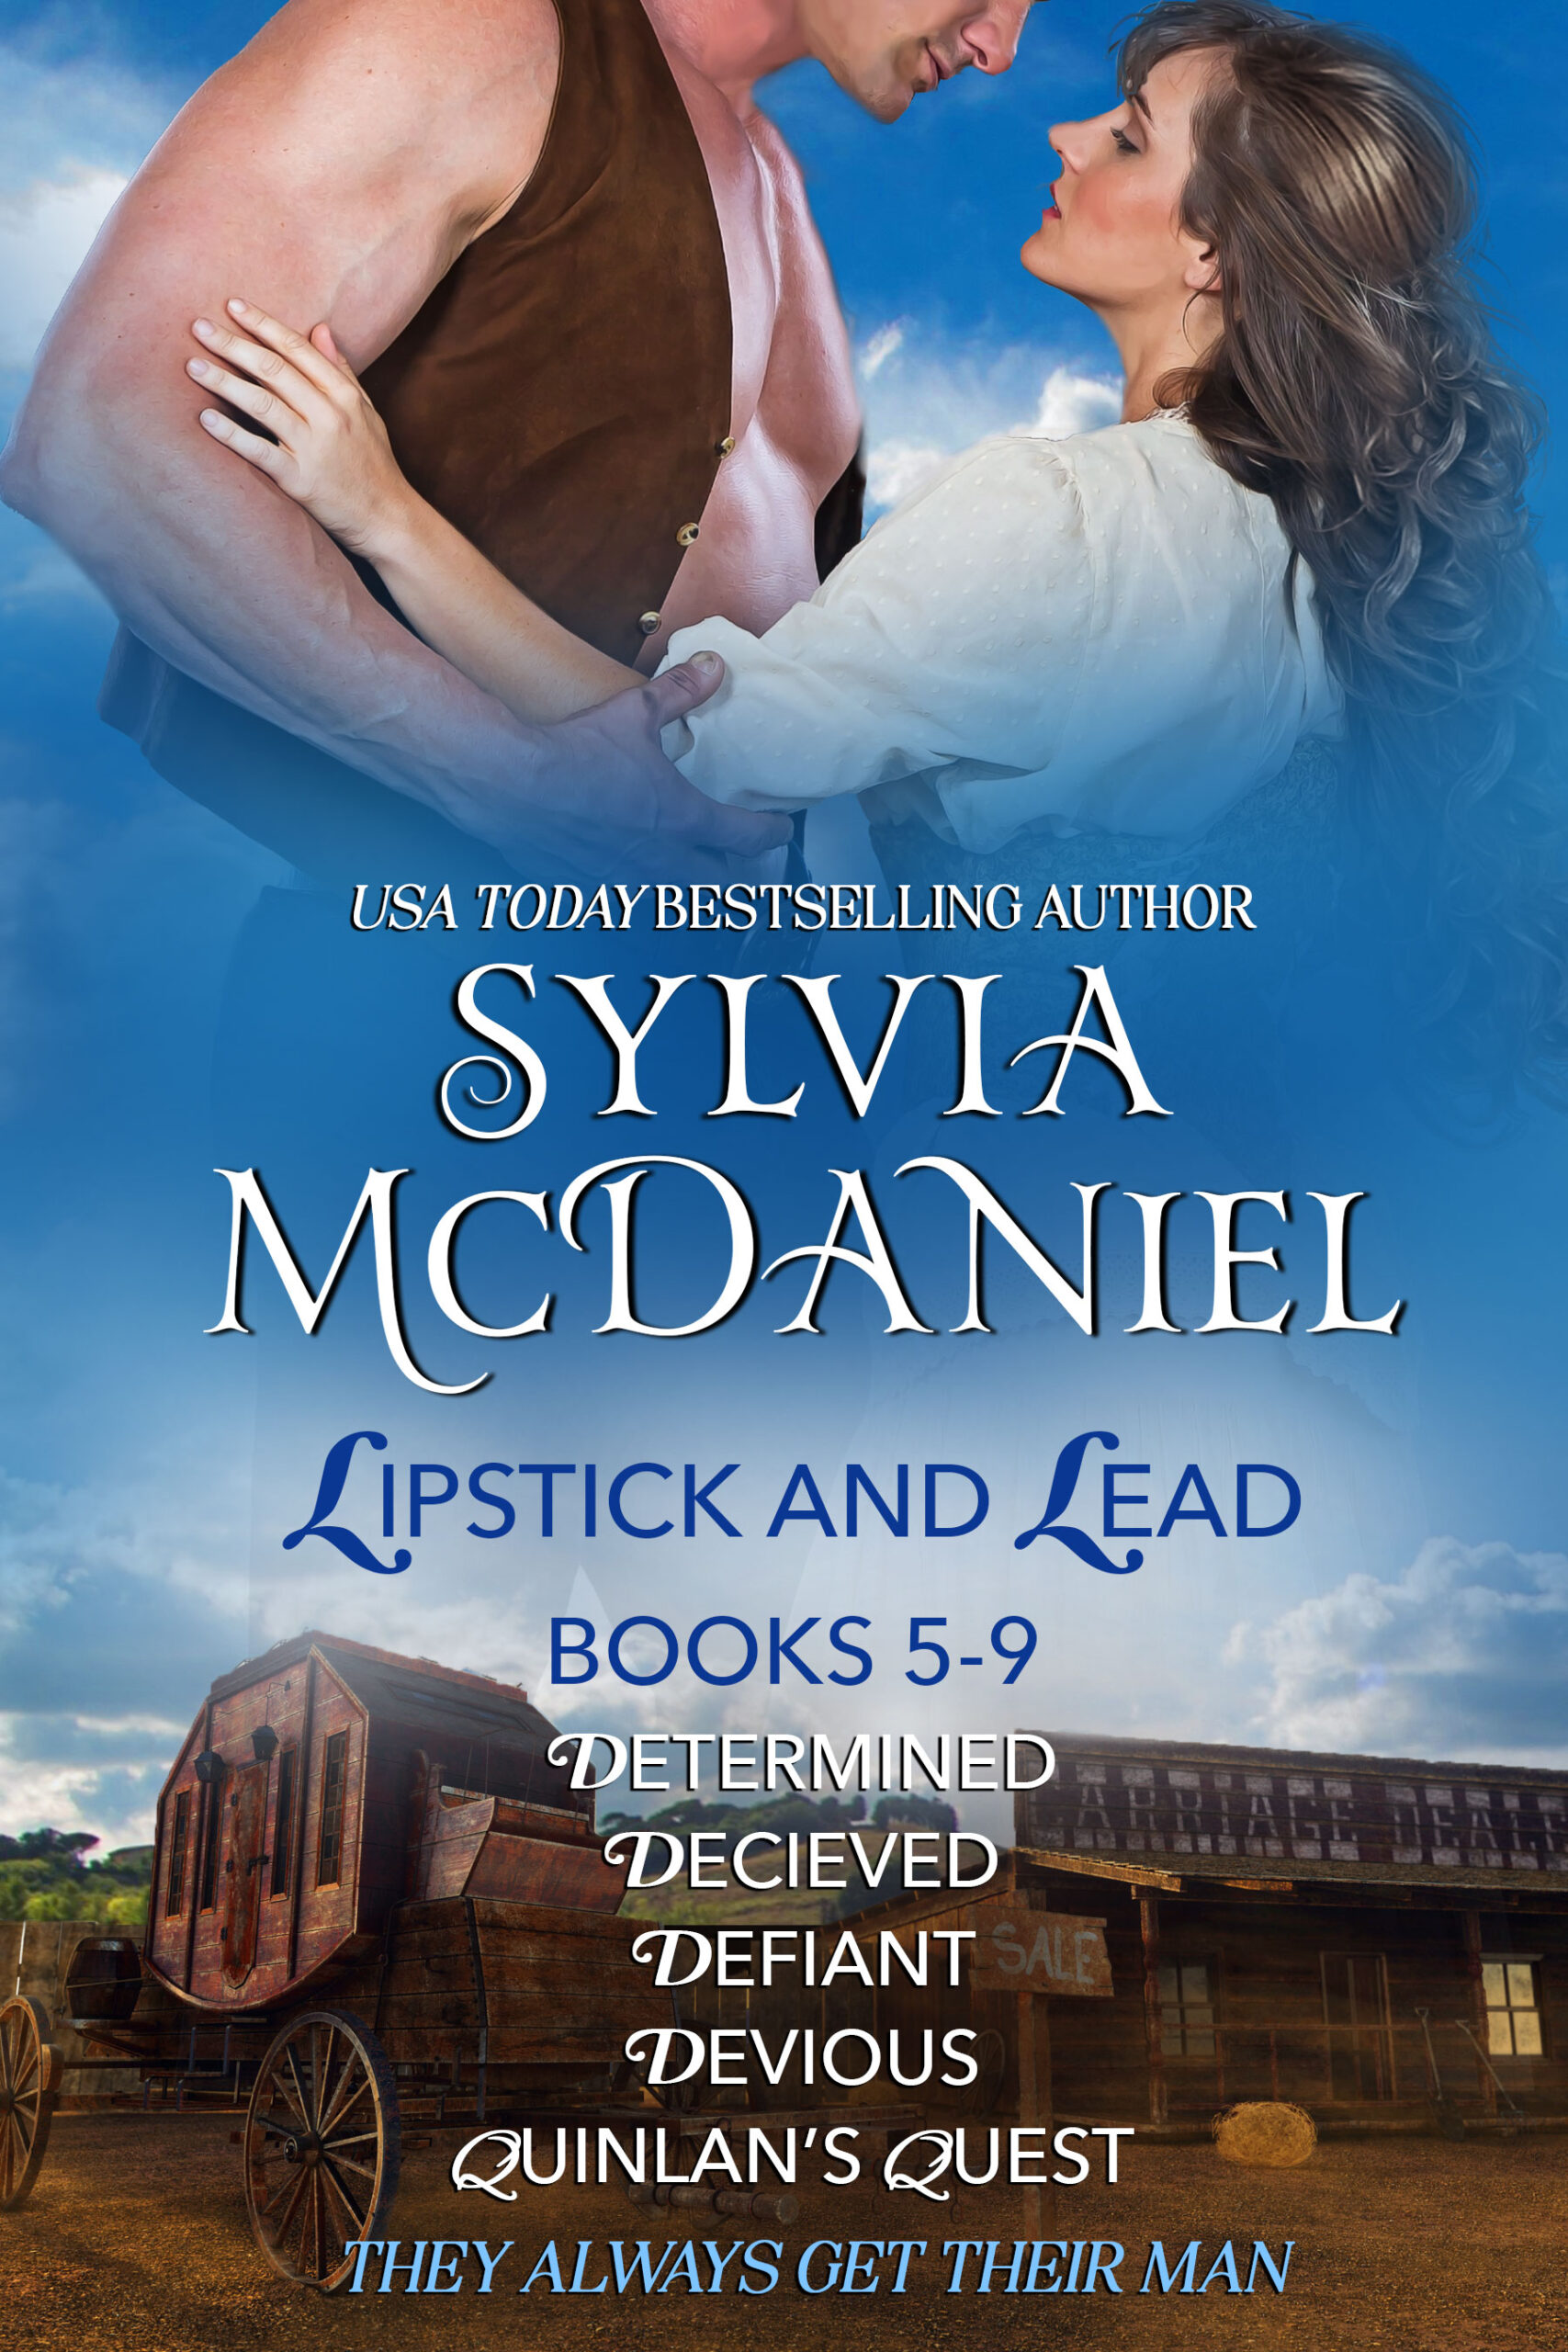 Cover of Box Set of Lipstick and Lead books 5-9 by Sylvia McDaniel. Brunette woman looking up a cowboy. Box Set for Lipstick and Lead books 5-9.